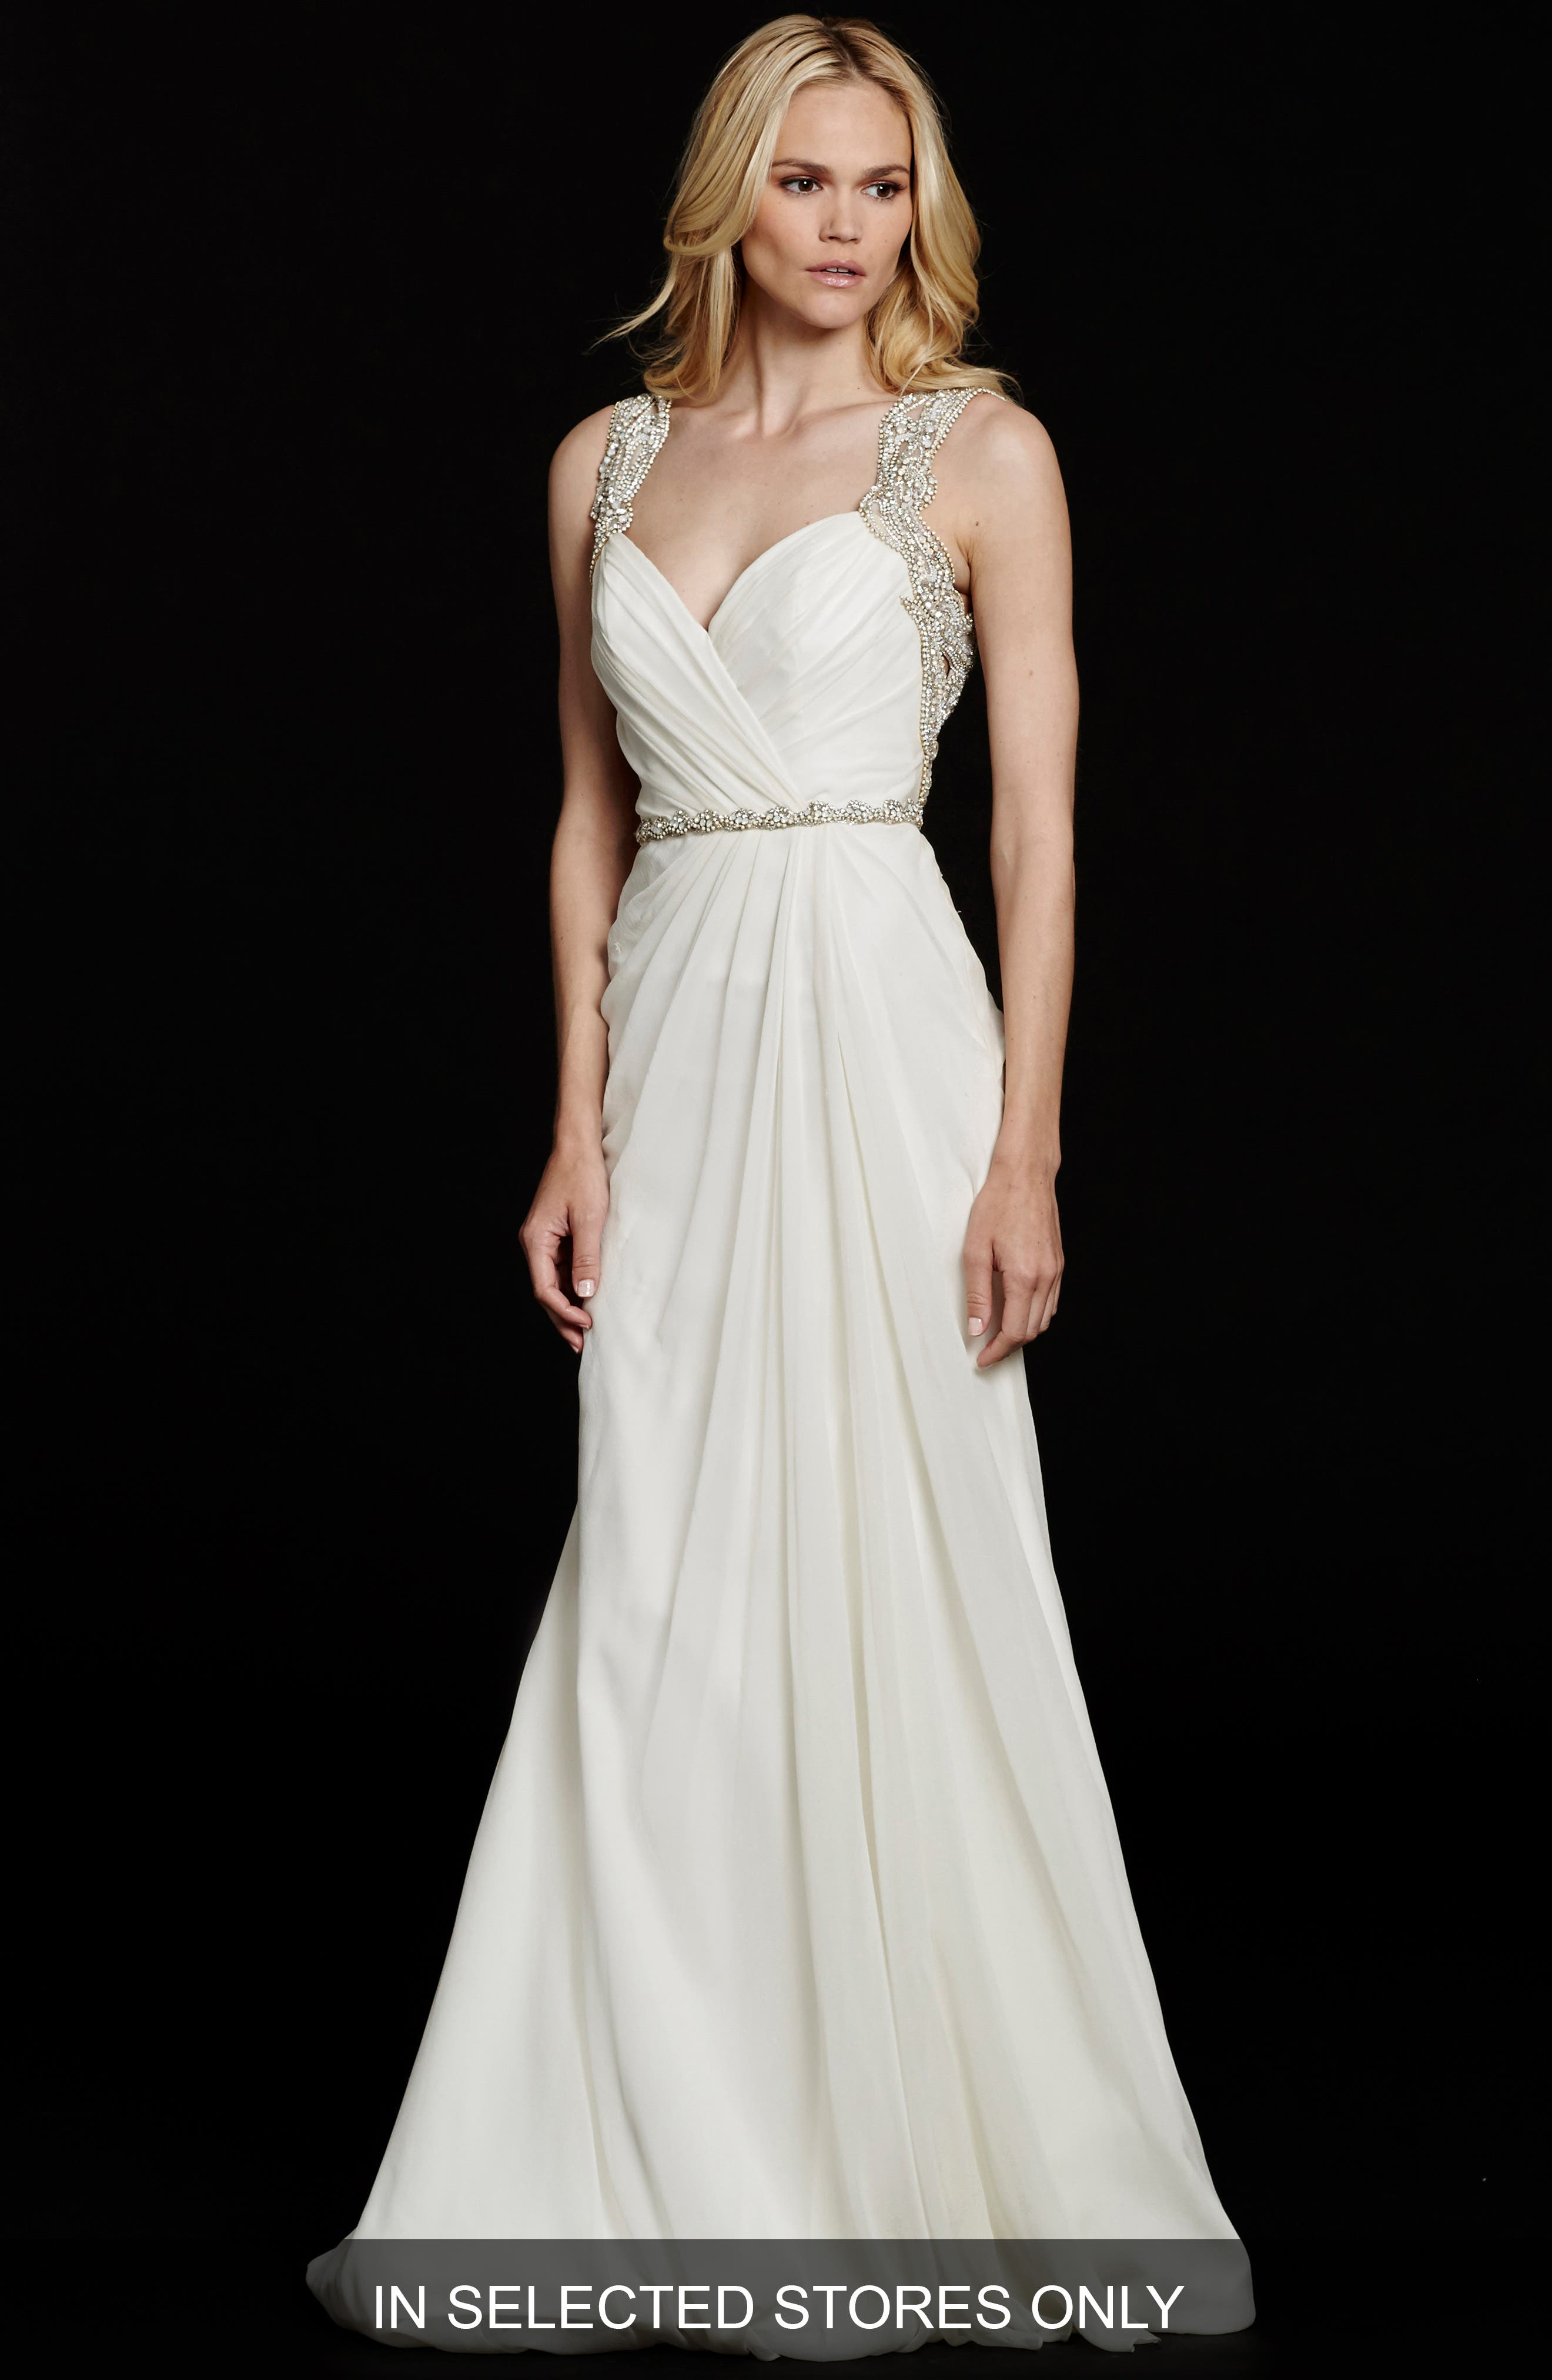 Alternate Image 1 Selected - Hayley Paige Portia Embellished Open Back Chiffon Gown